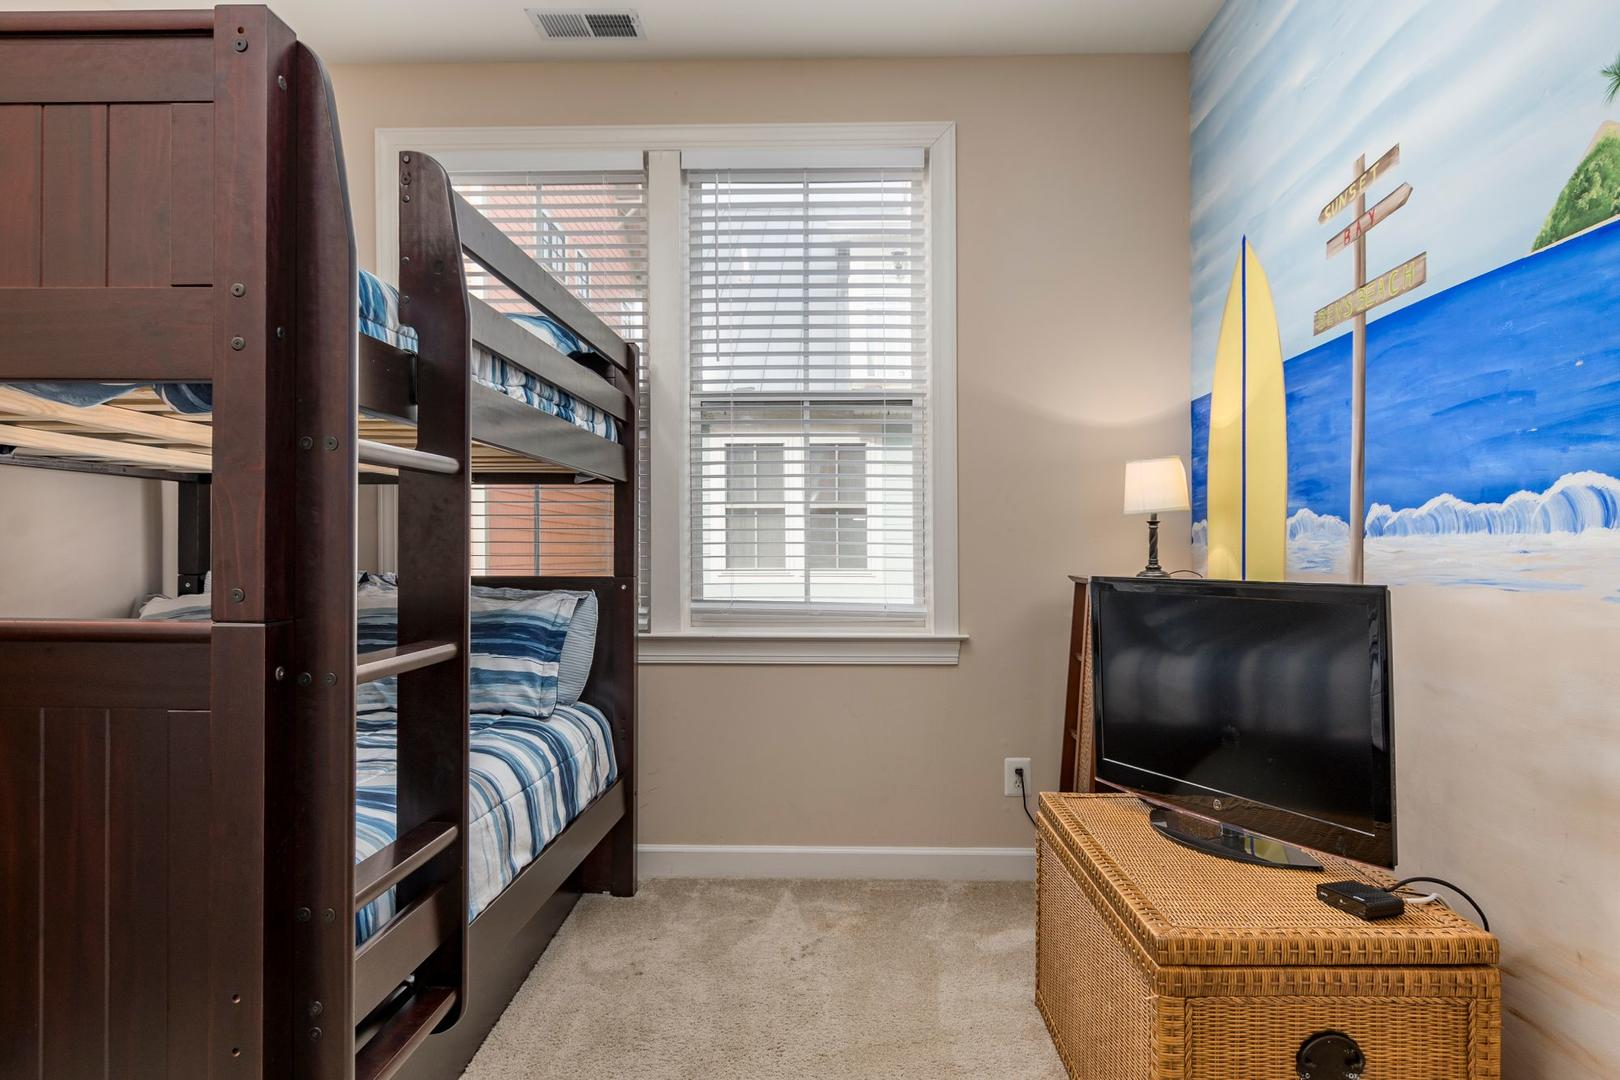 Sunset Island 34 Seaside Dr. - 3rd Floor Bunk Bed Room